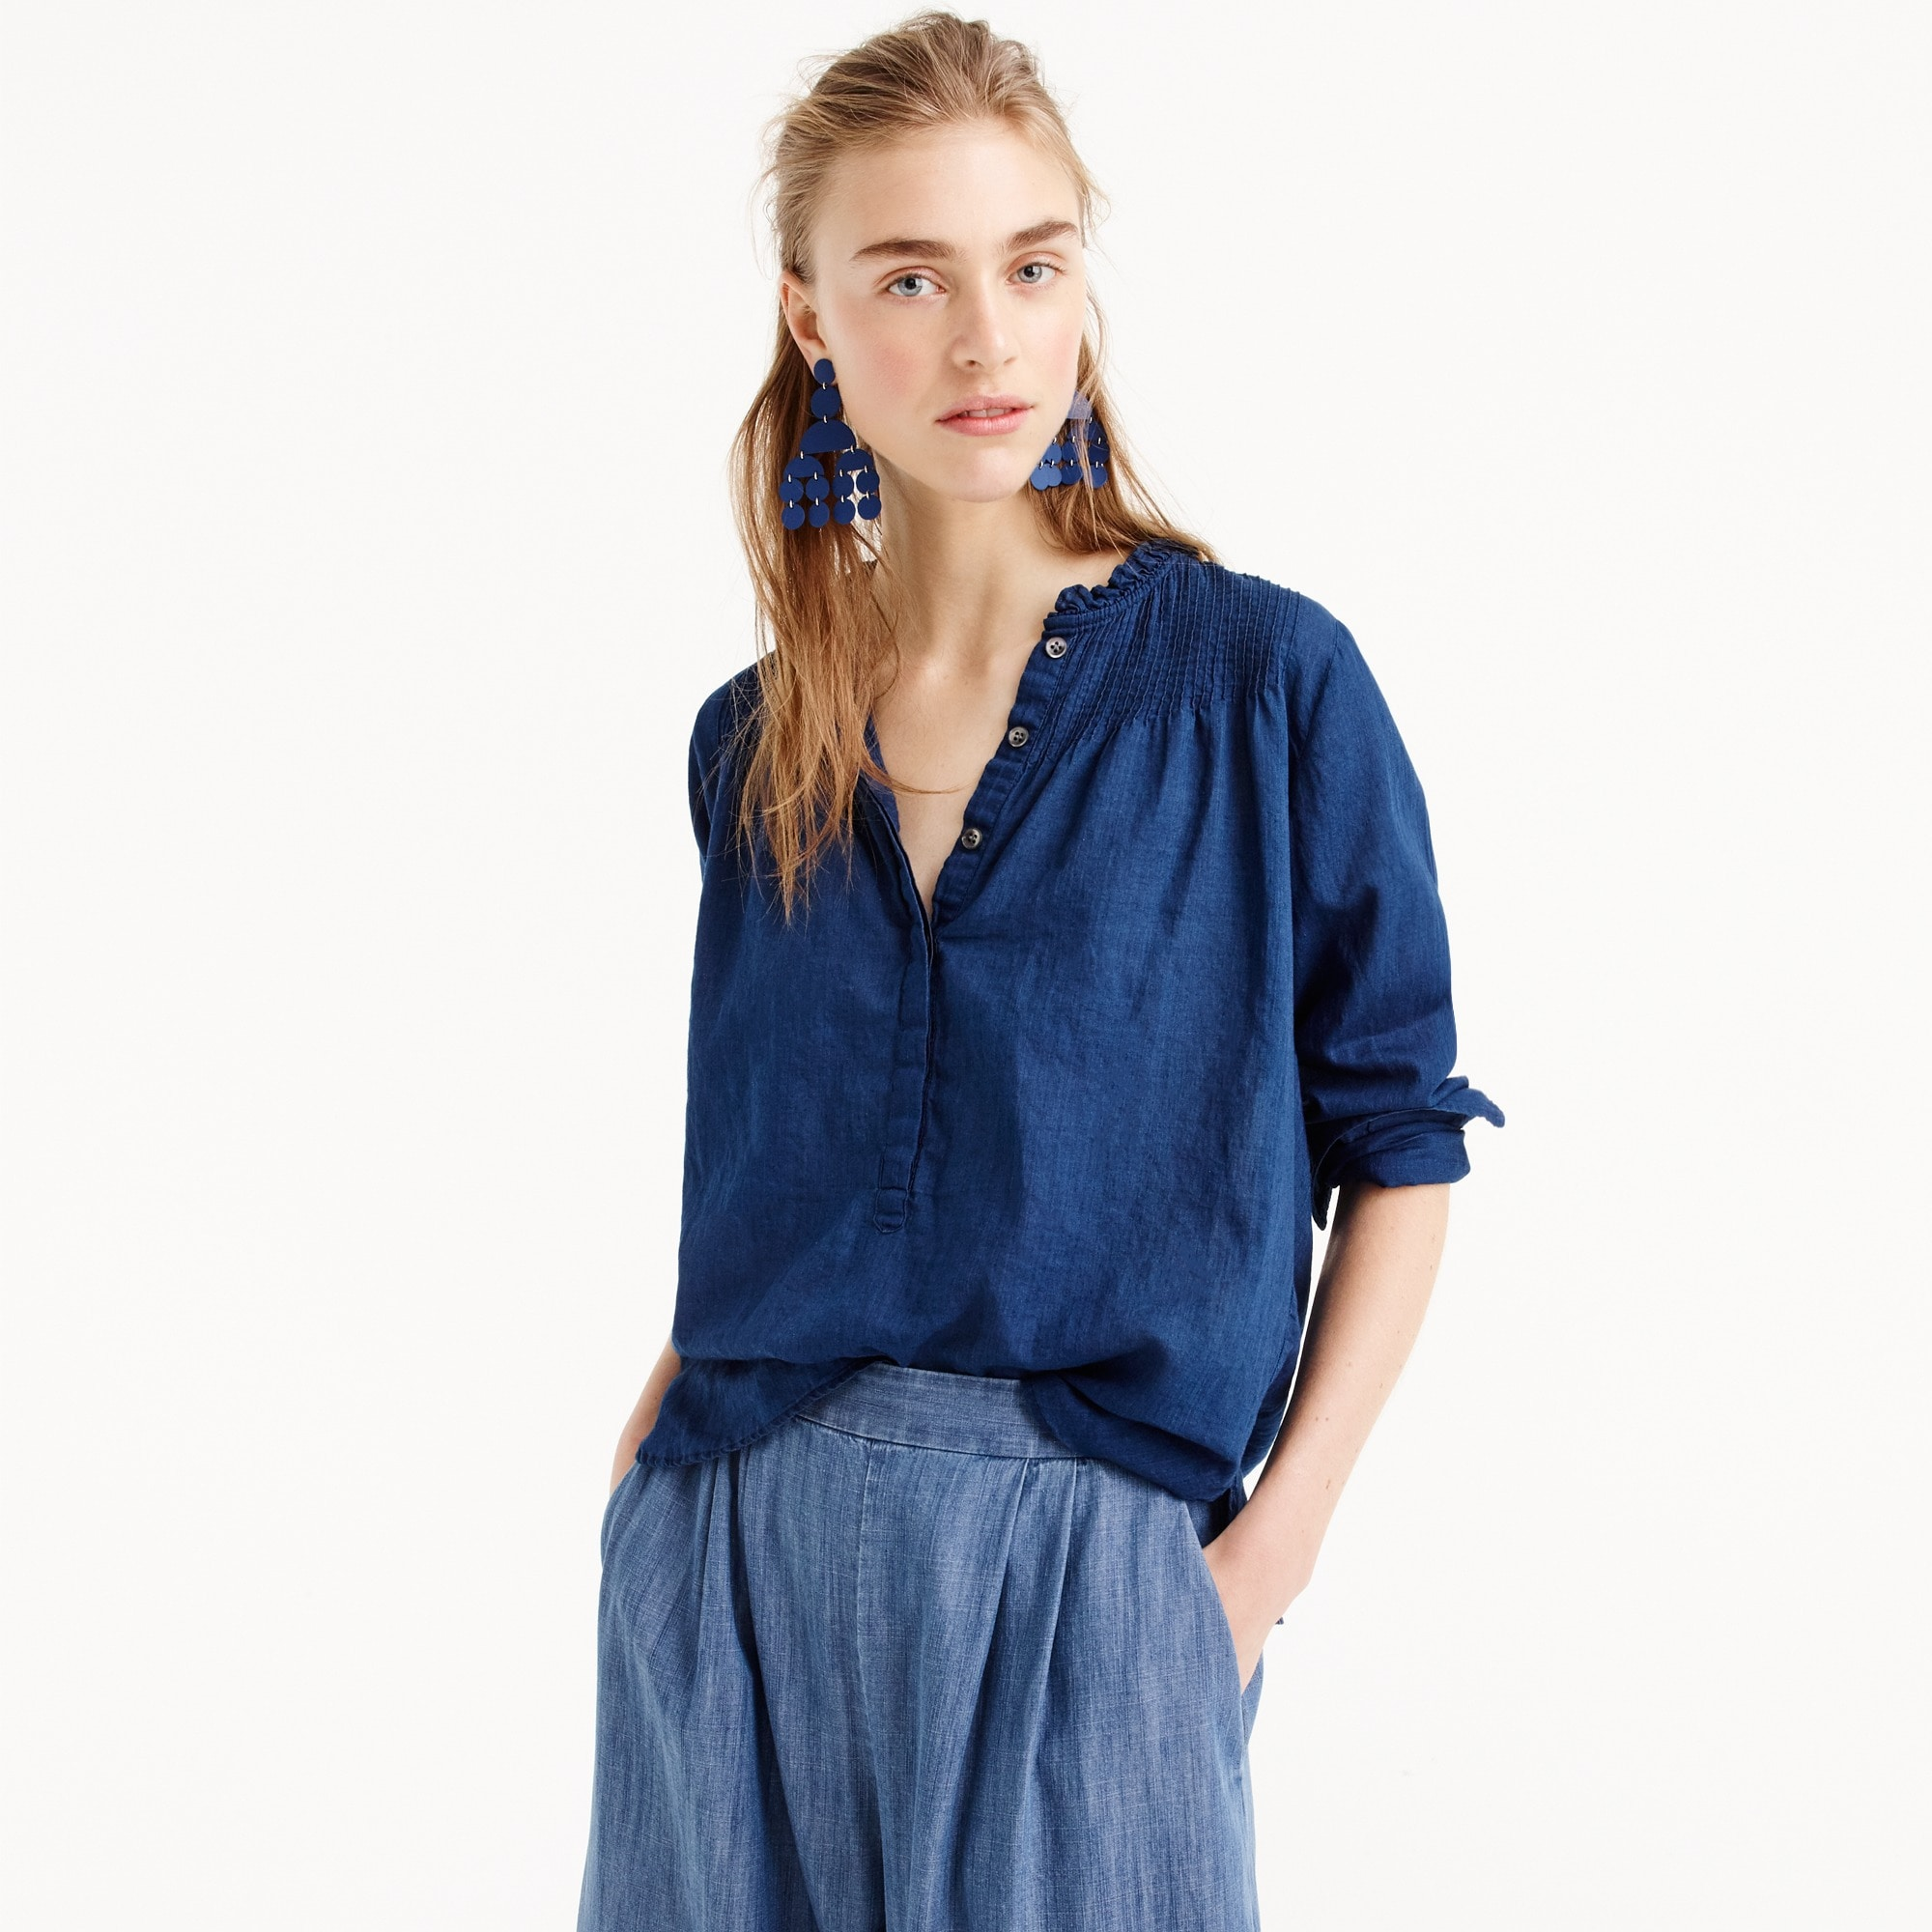 Ruffle classic popover shirt in indigo women shirts & tops c